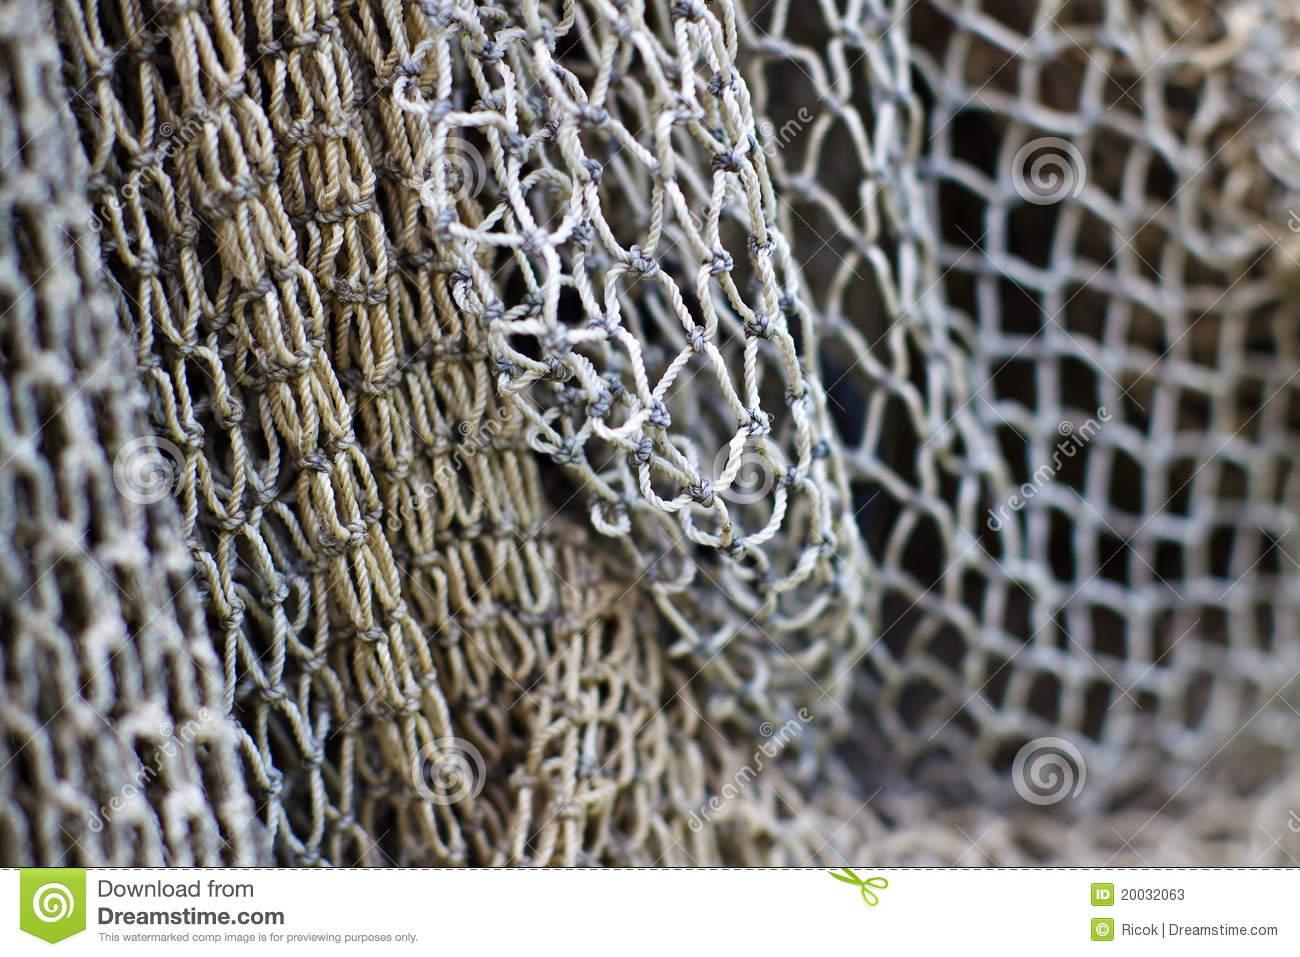 Annetta powell quotes quotesgram for Sjfc fish r net